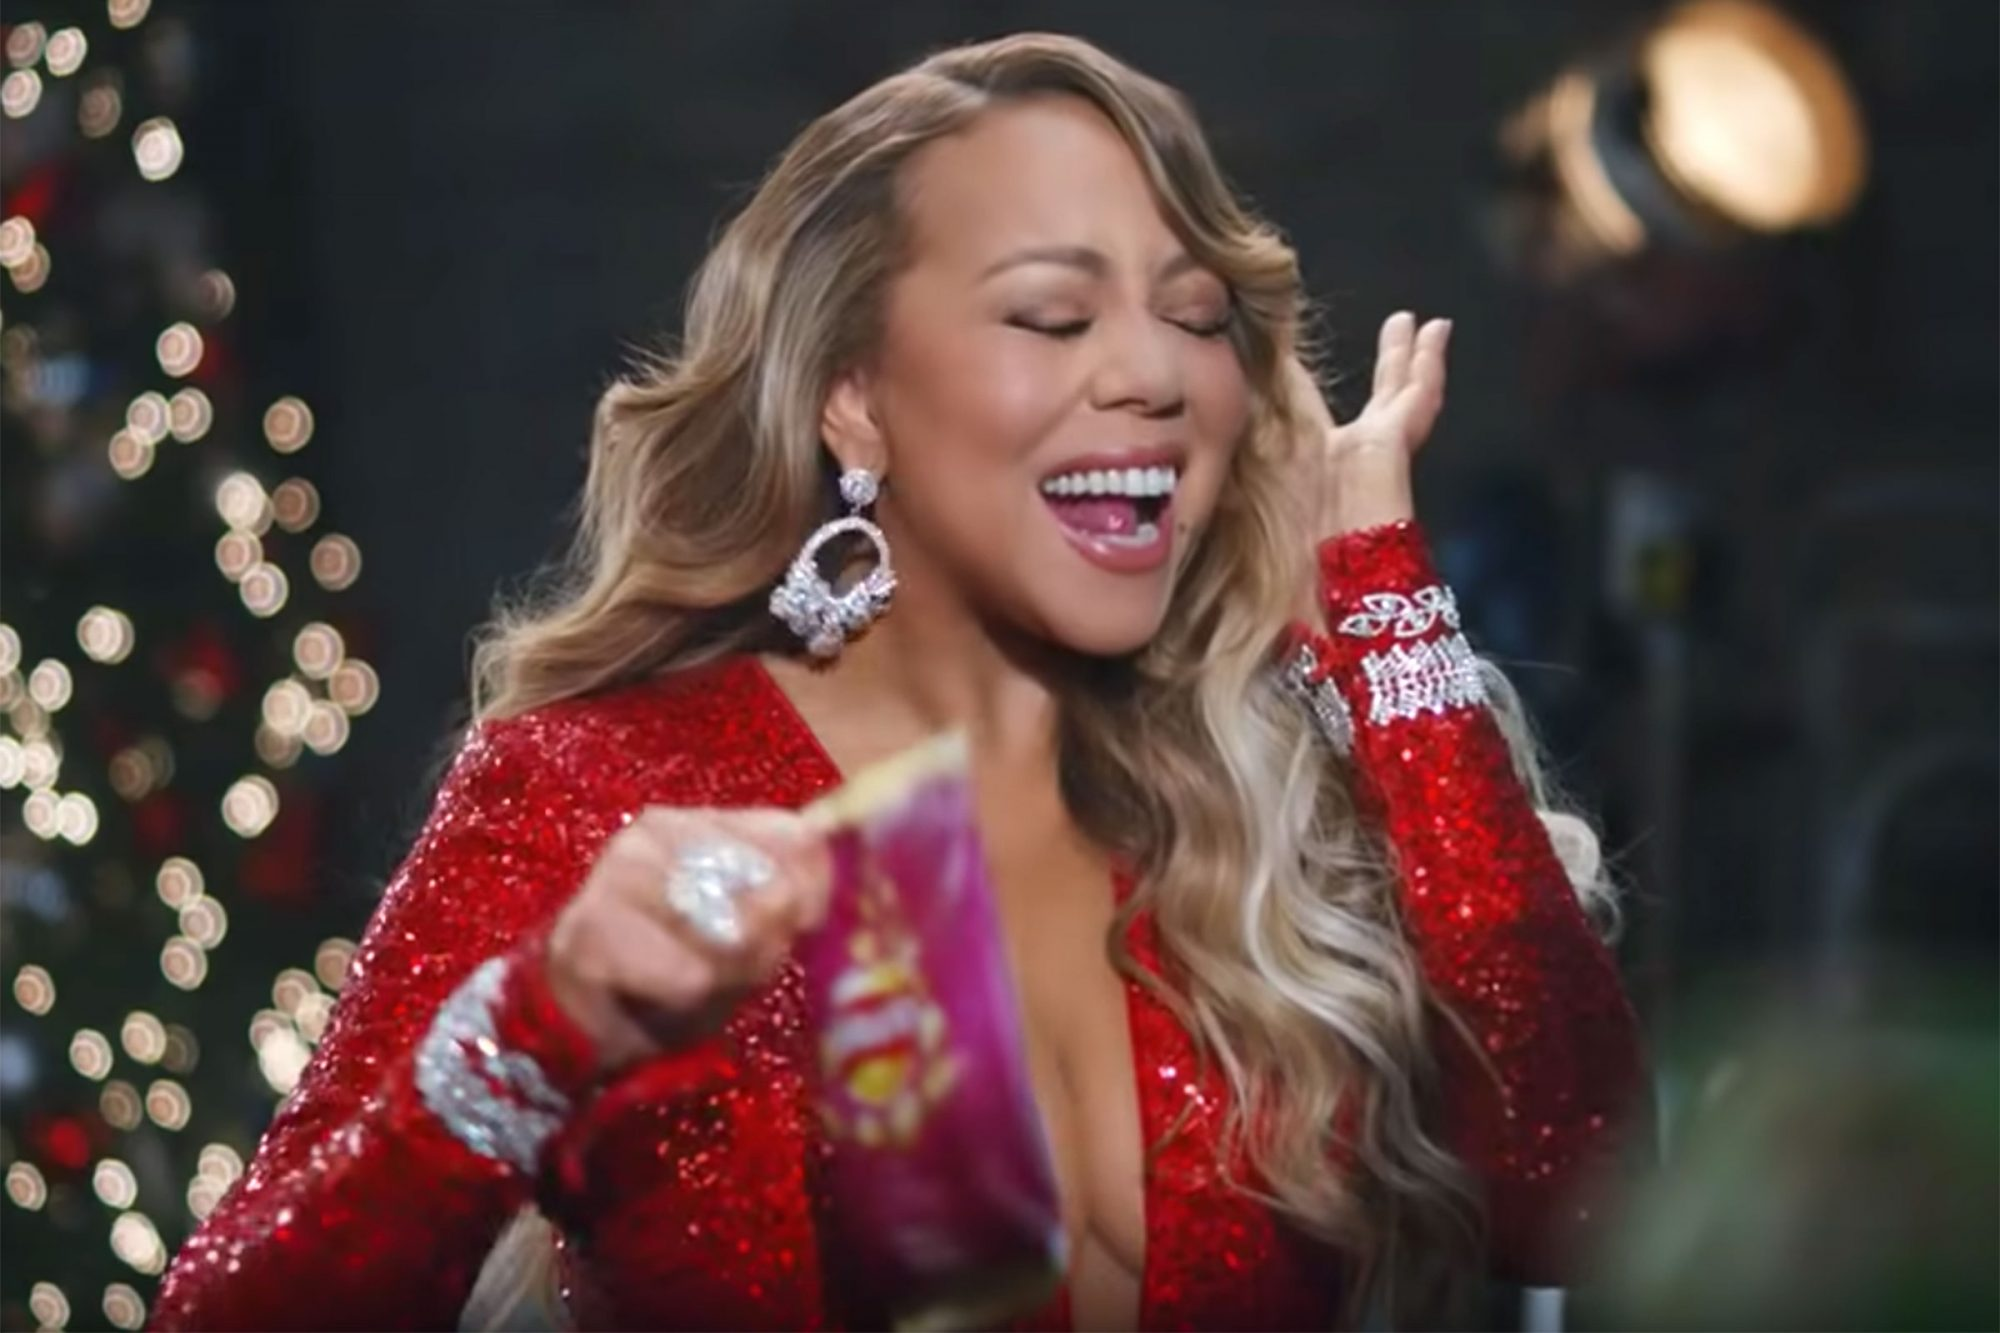 Mariah Carey Walkers Crisps ad